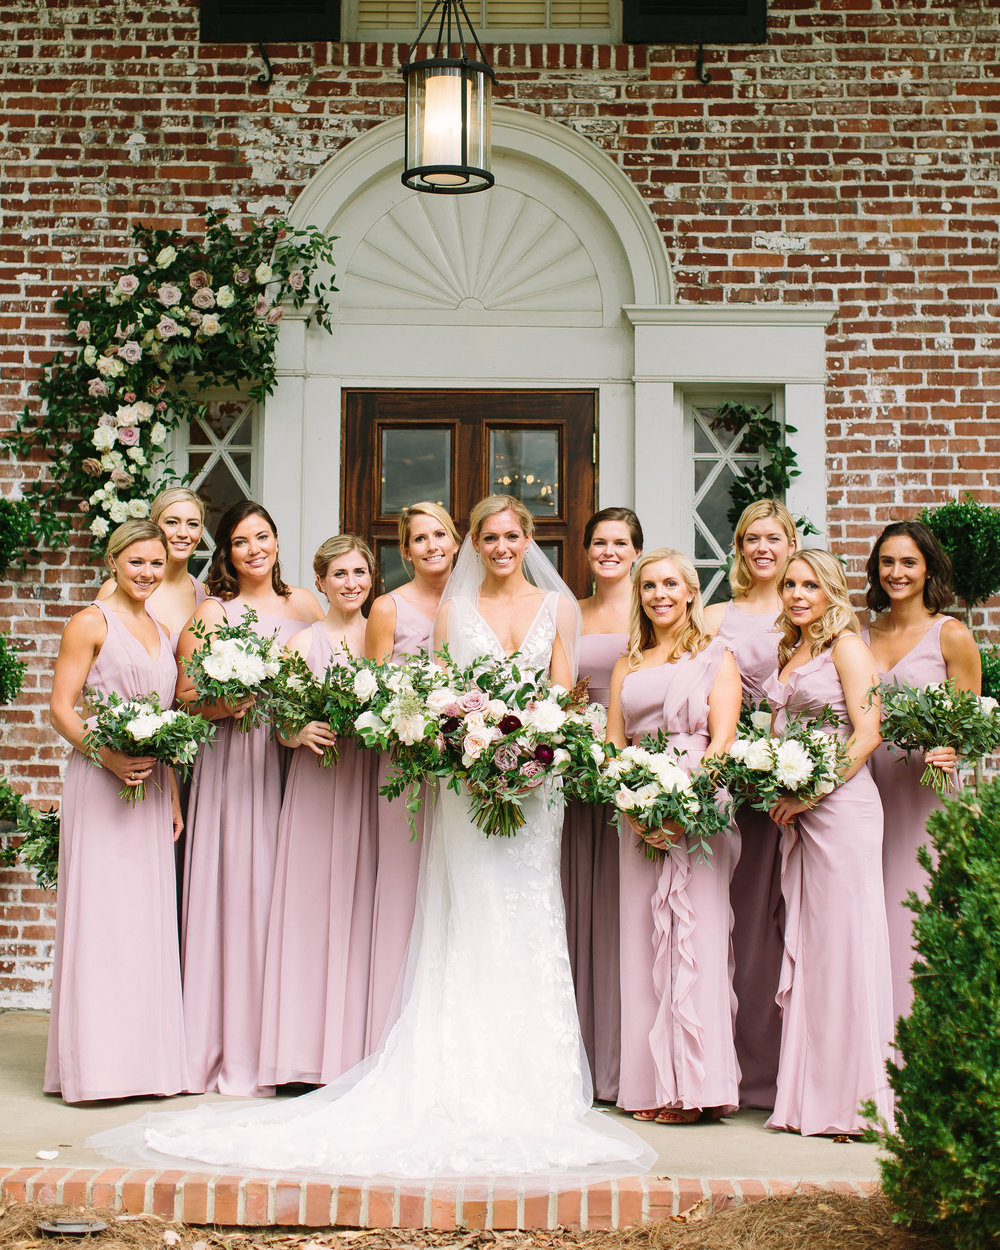 Dusty rose bridesmaid dresses with cream bouquet with lush greenery // Nashville Wedding Floral Design